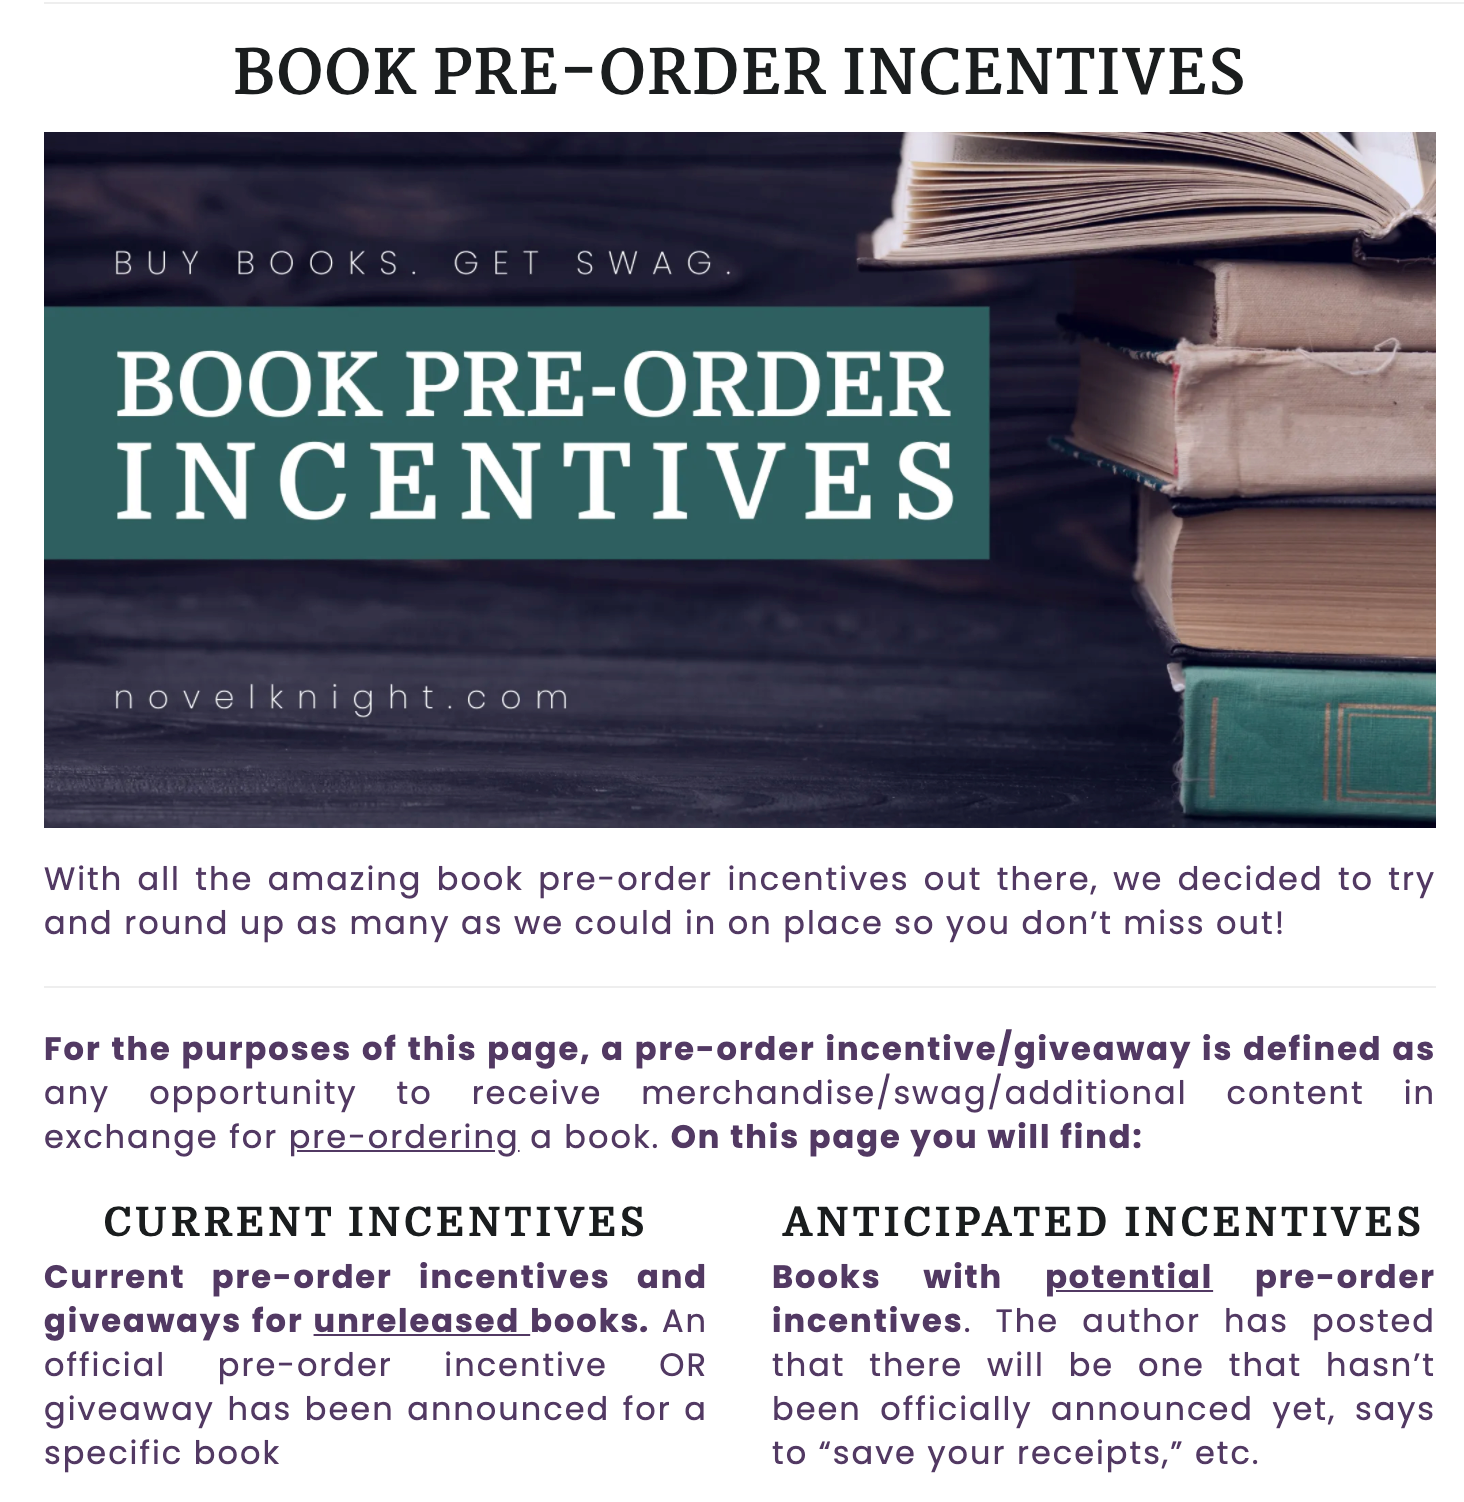 improve inventory turnover pre-order